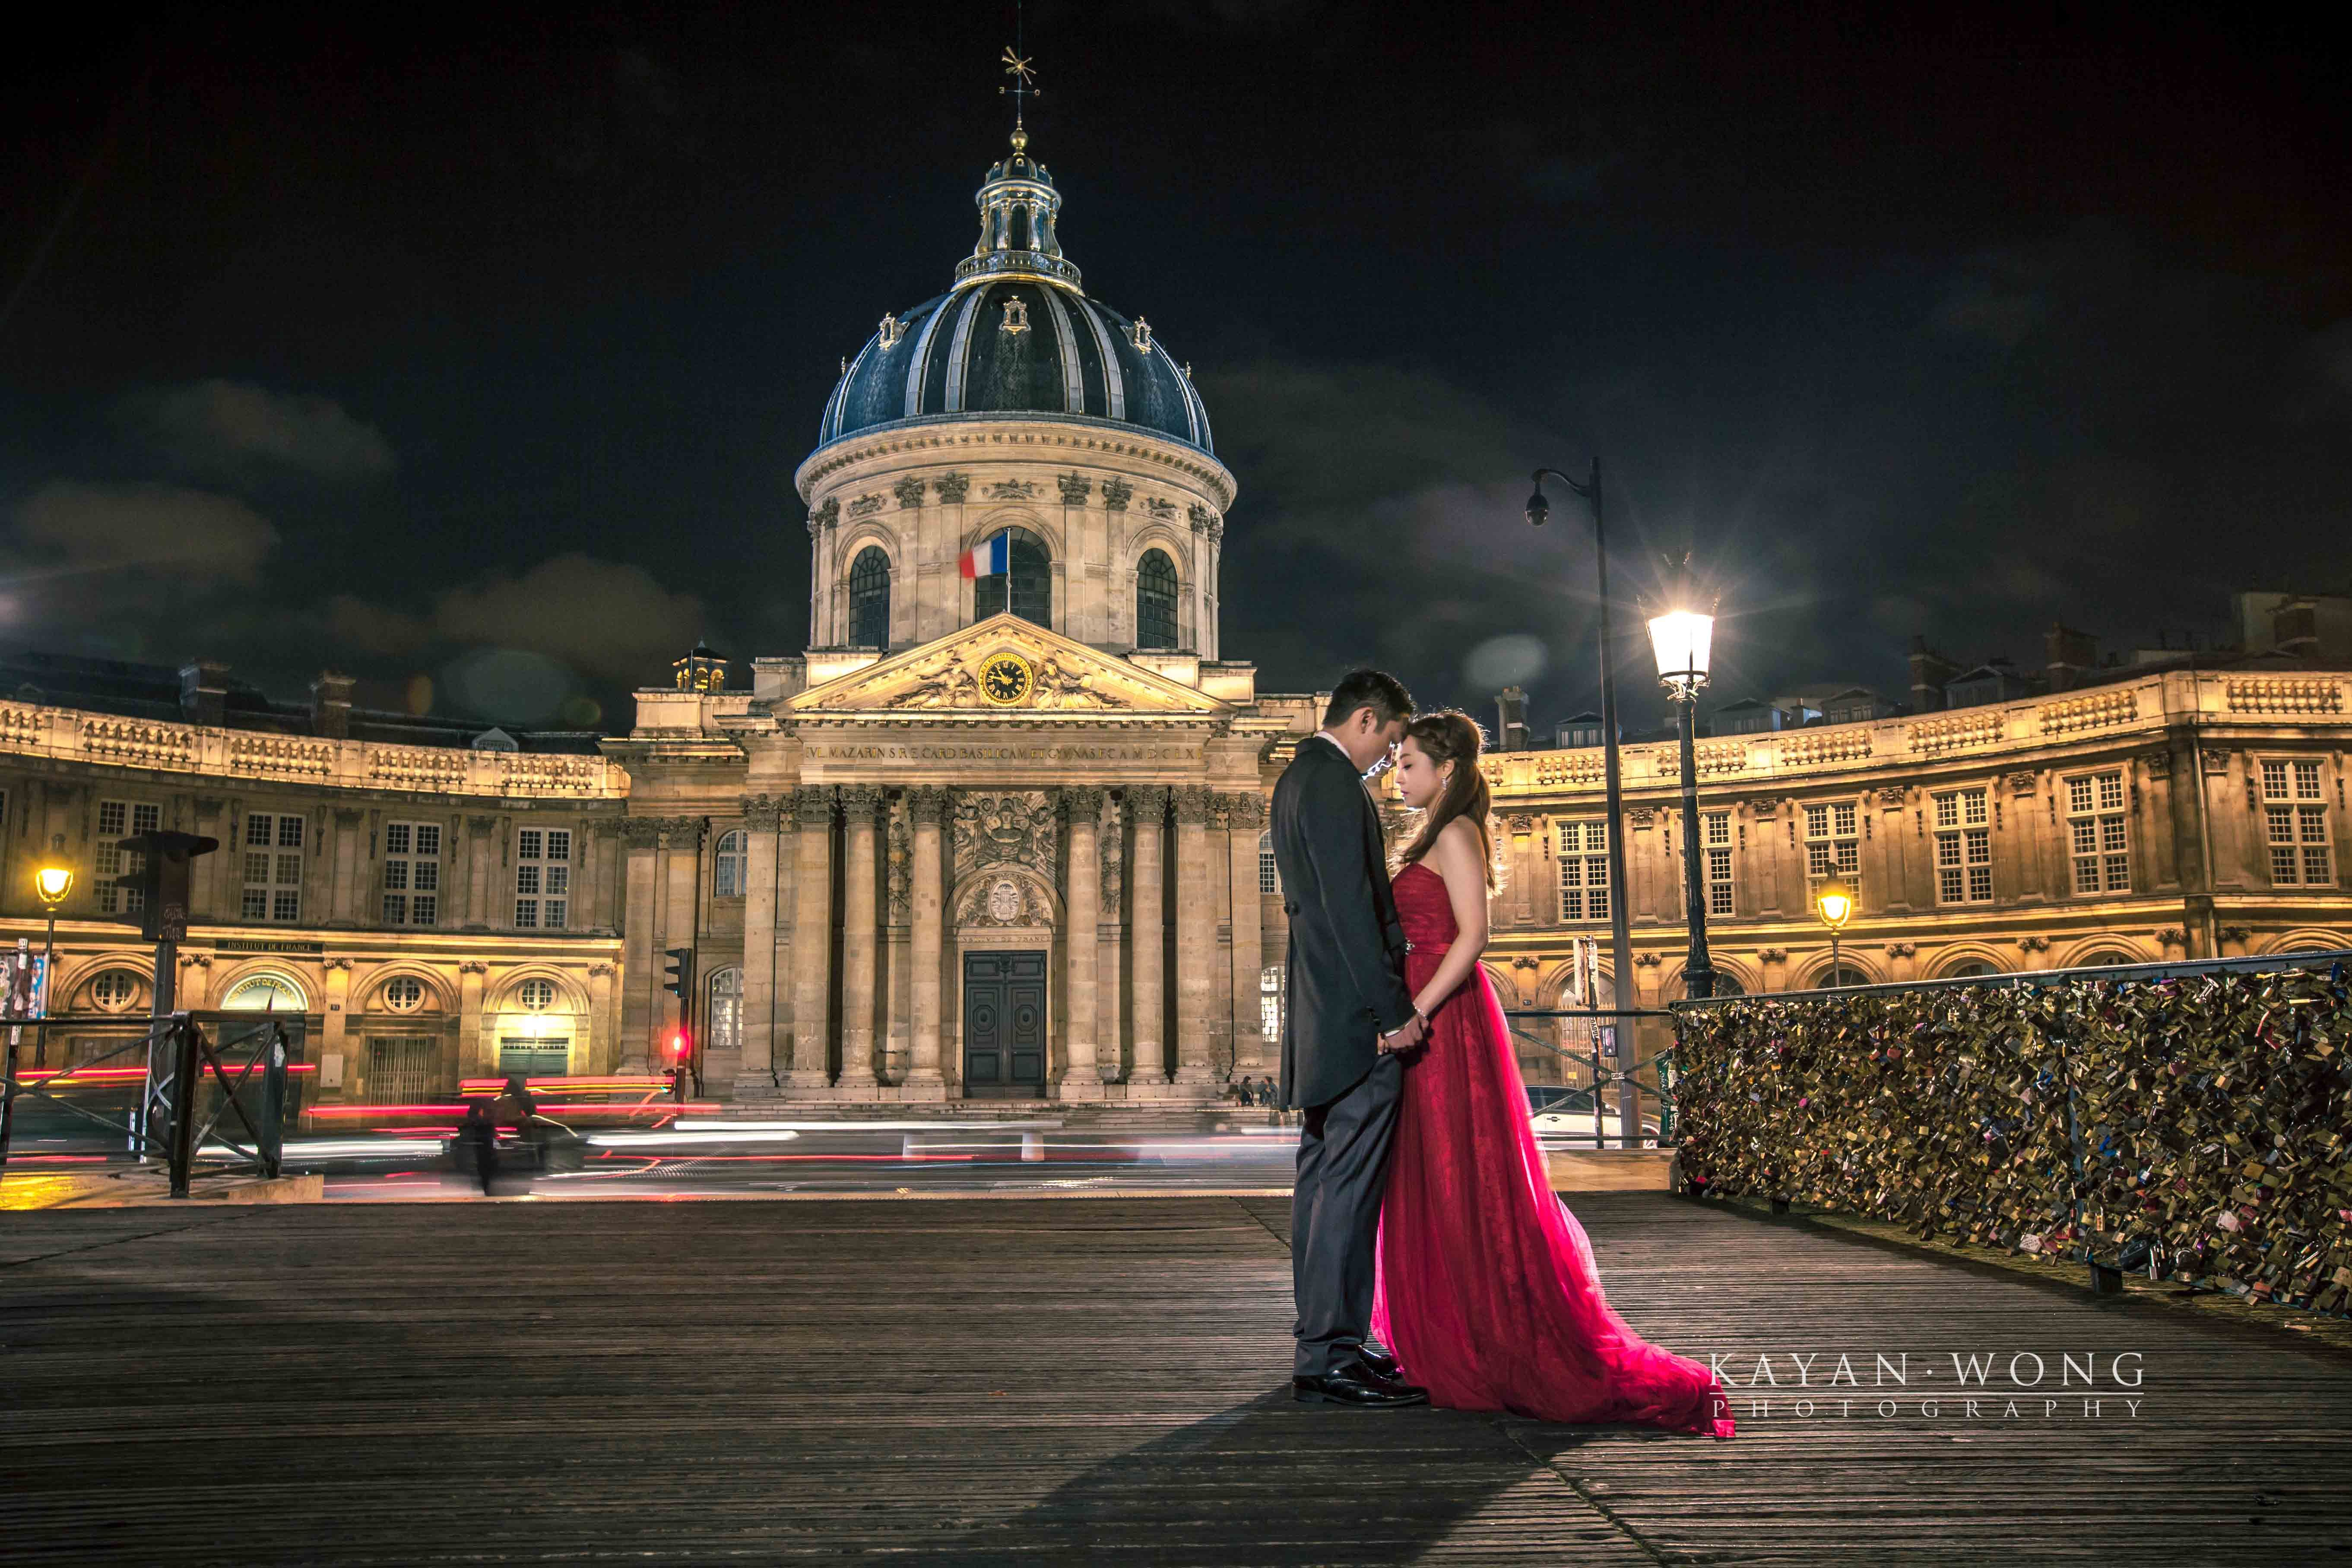 pre wedding photoshoot location malaysia%0A Pre wedding photography in front of the royal palace in Amsterdam   Netherlands  Europe   European Wedding    Pinterest   Pre wedding  photography